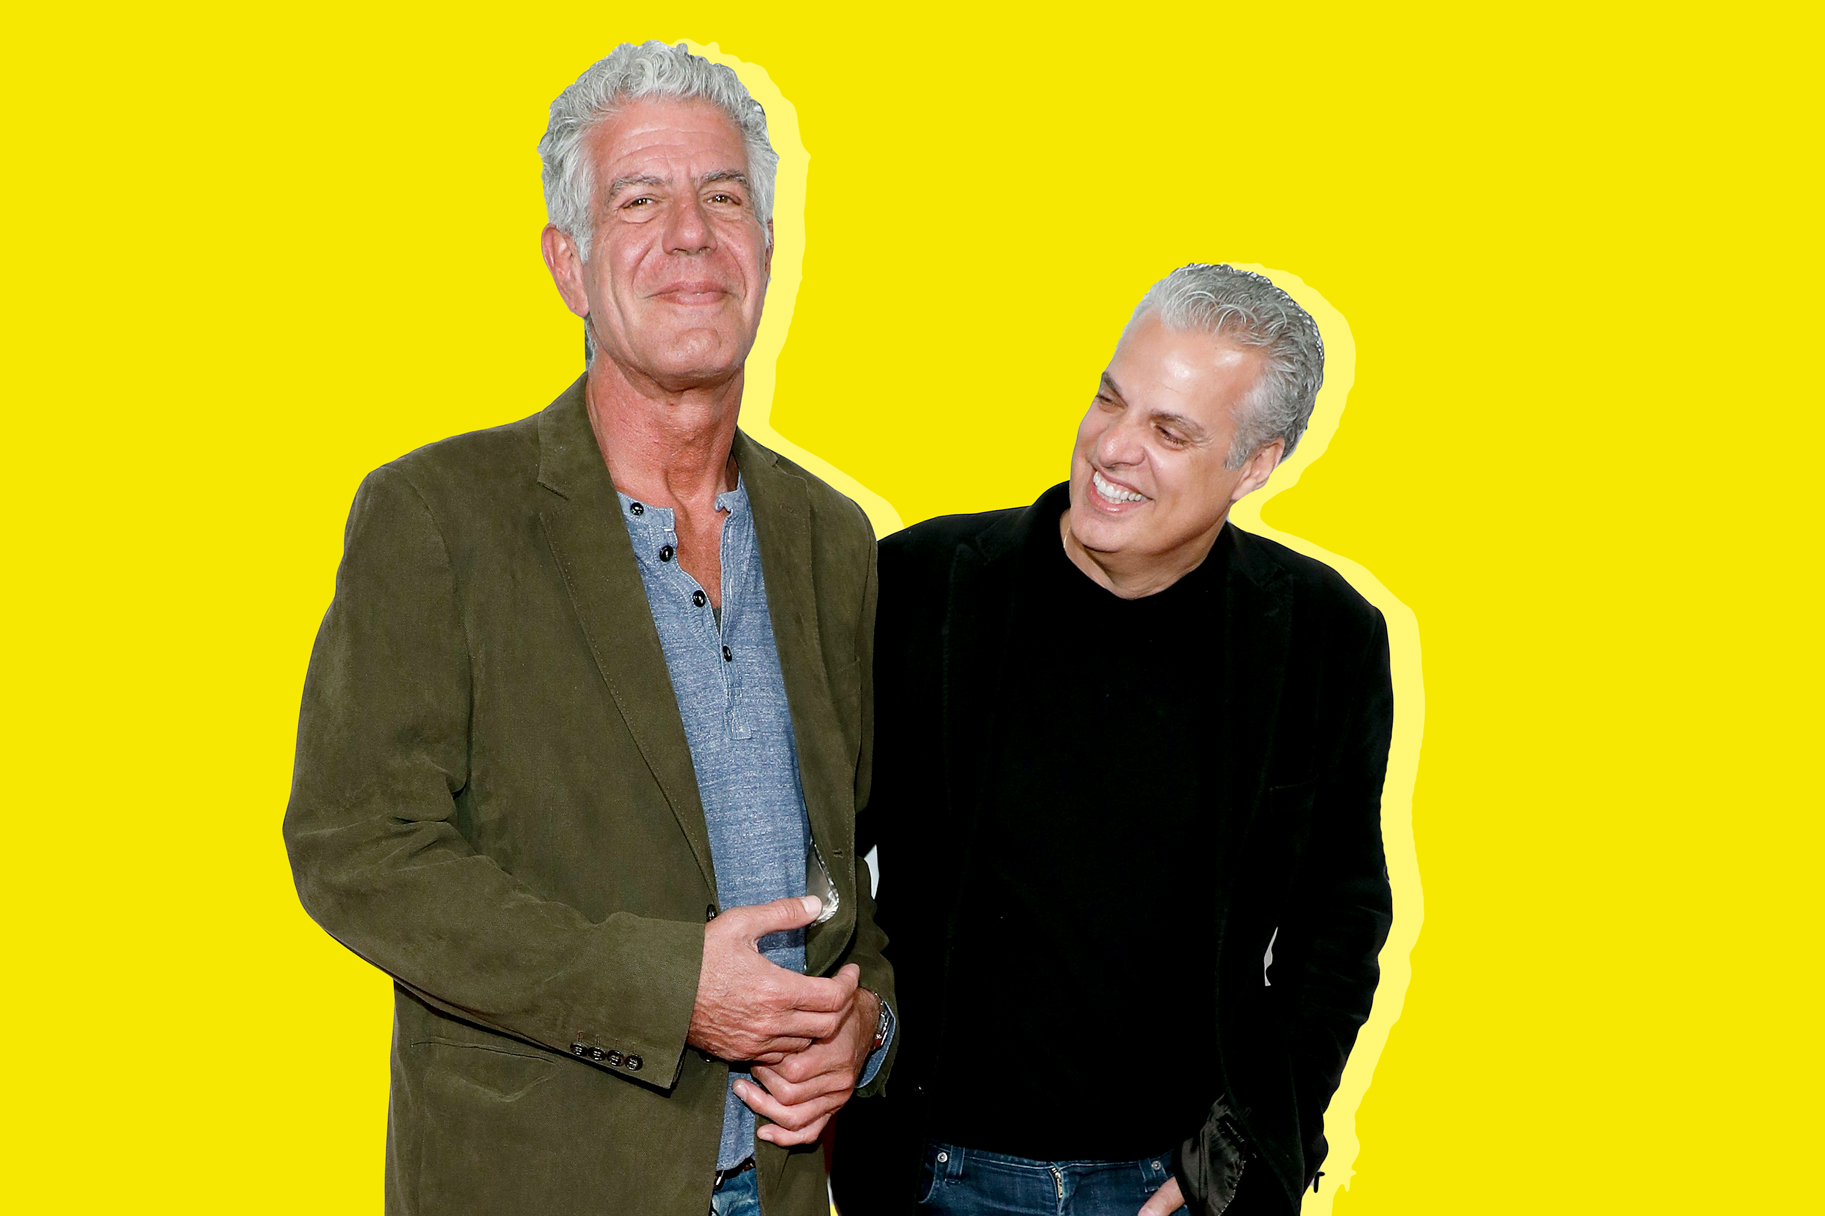 Eric Ripert, Anthony Bourdain